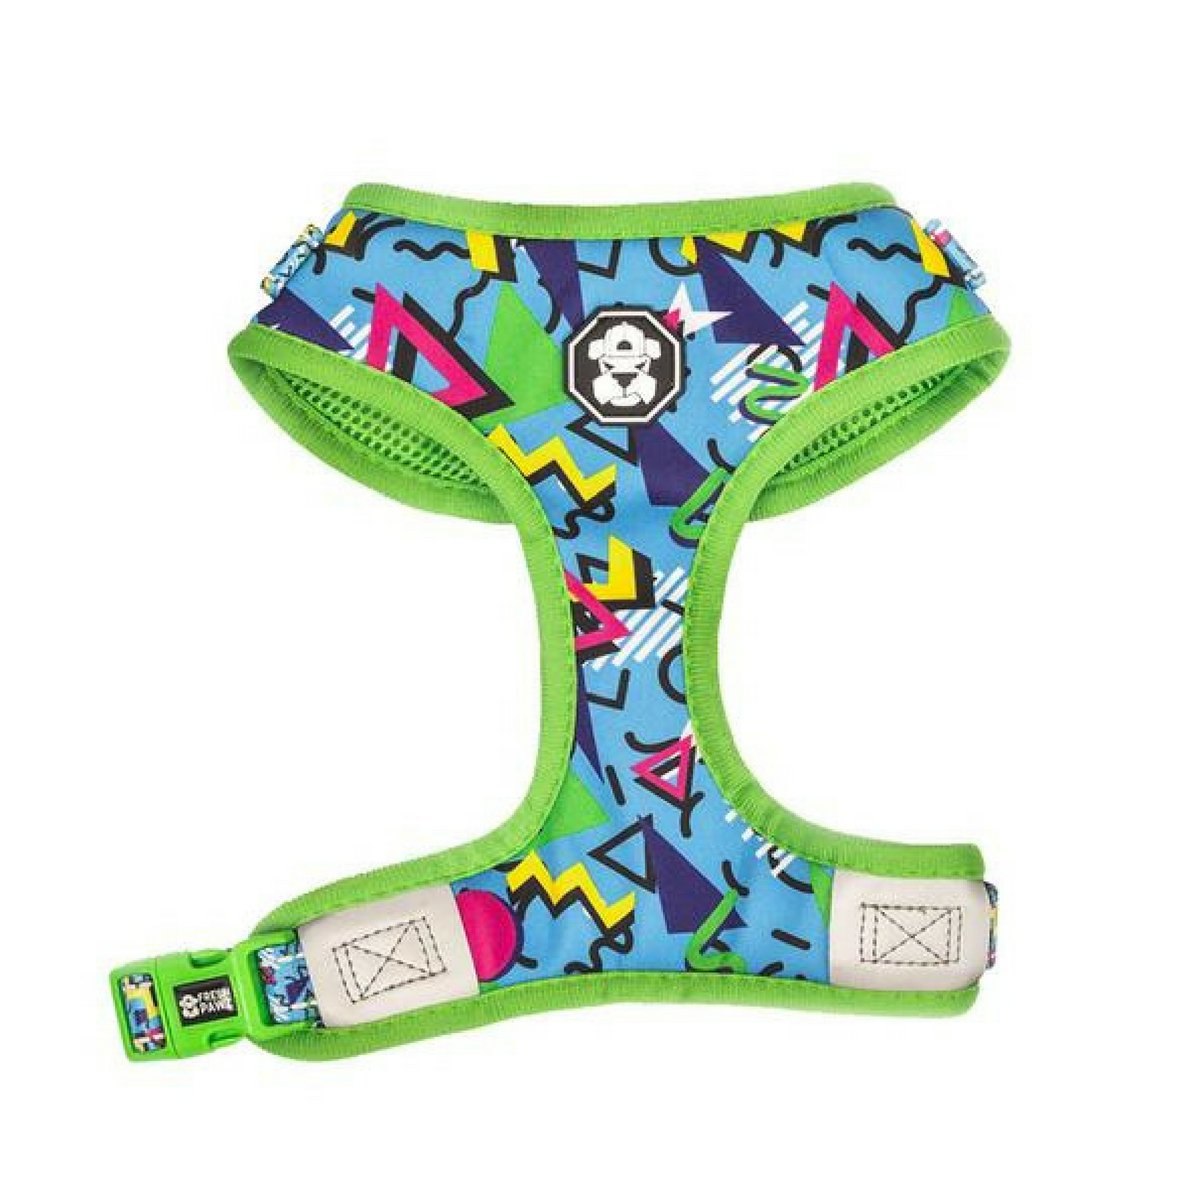 The 90's Throwback Large The 90's Throwback Large Fresh Pawz Adjustable Mesh Harness, The 90's Throwback, Large